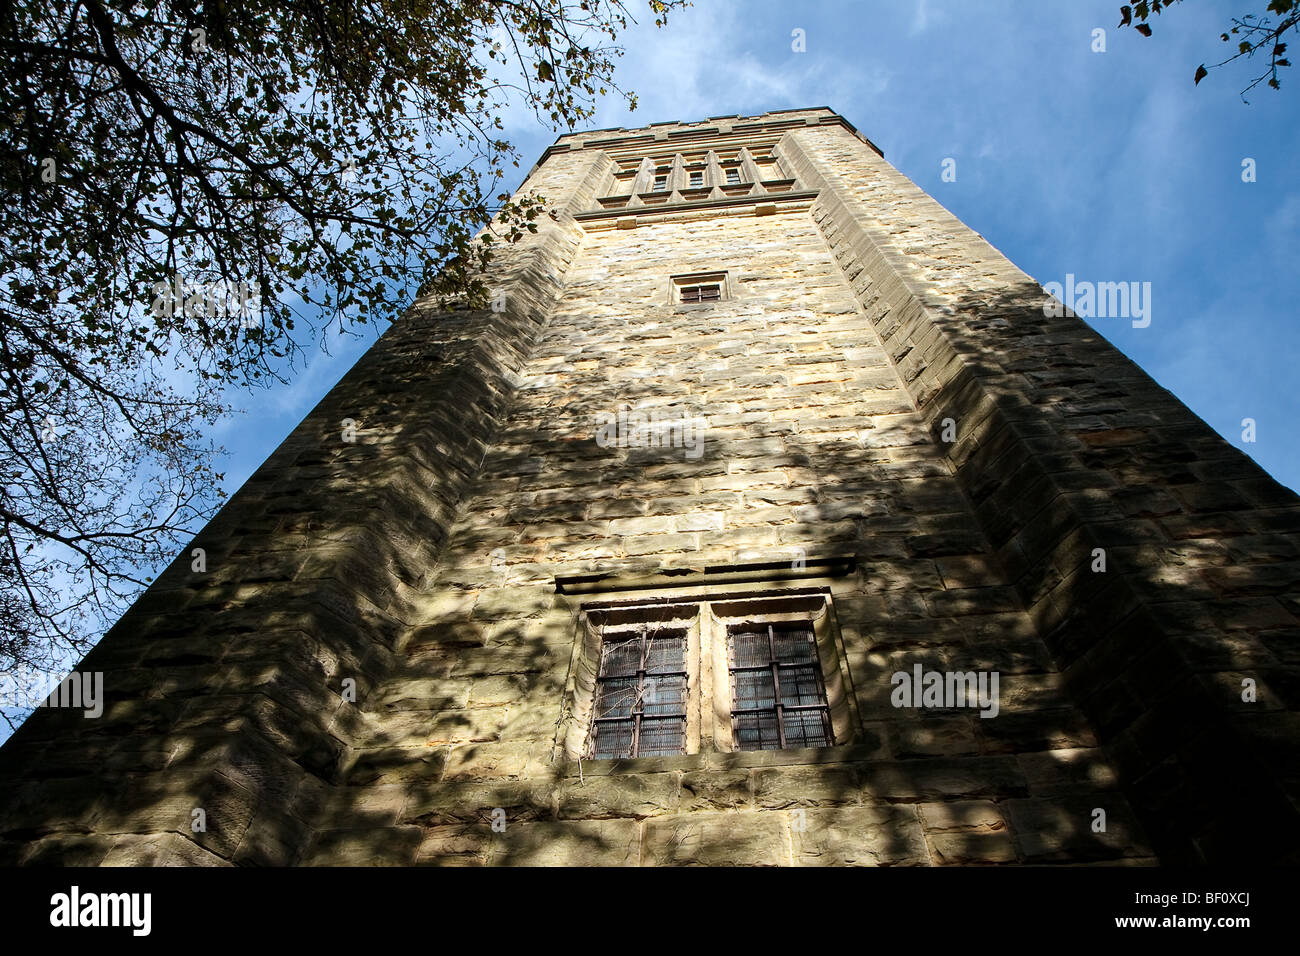 Old water tower no longer used in East Grinstead West Sussex - Stock Image